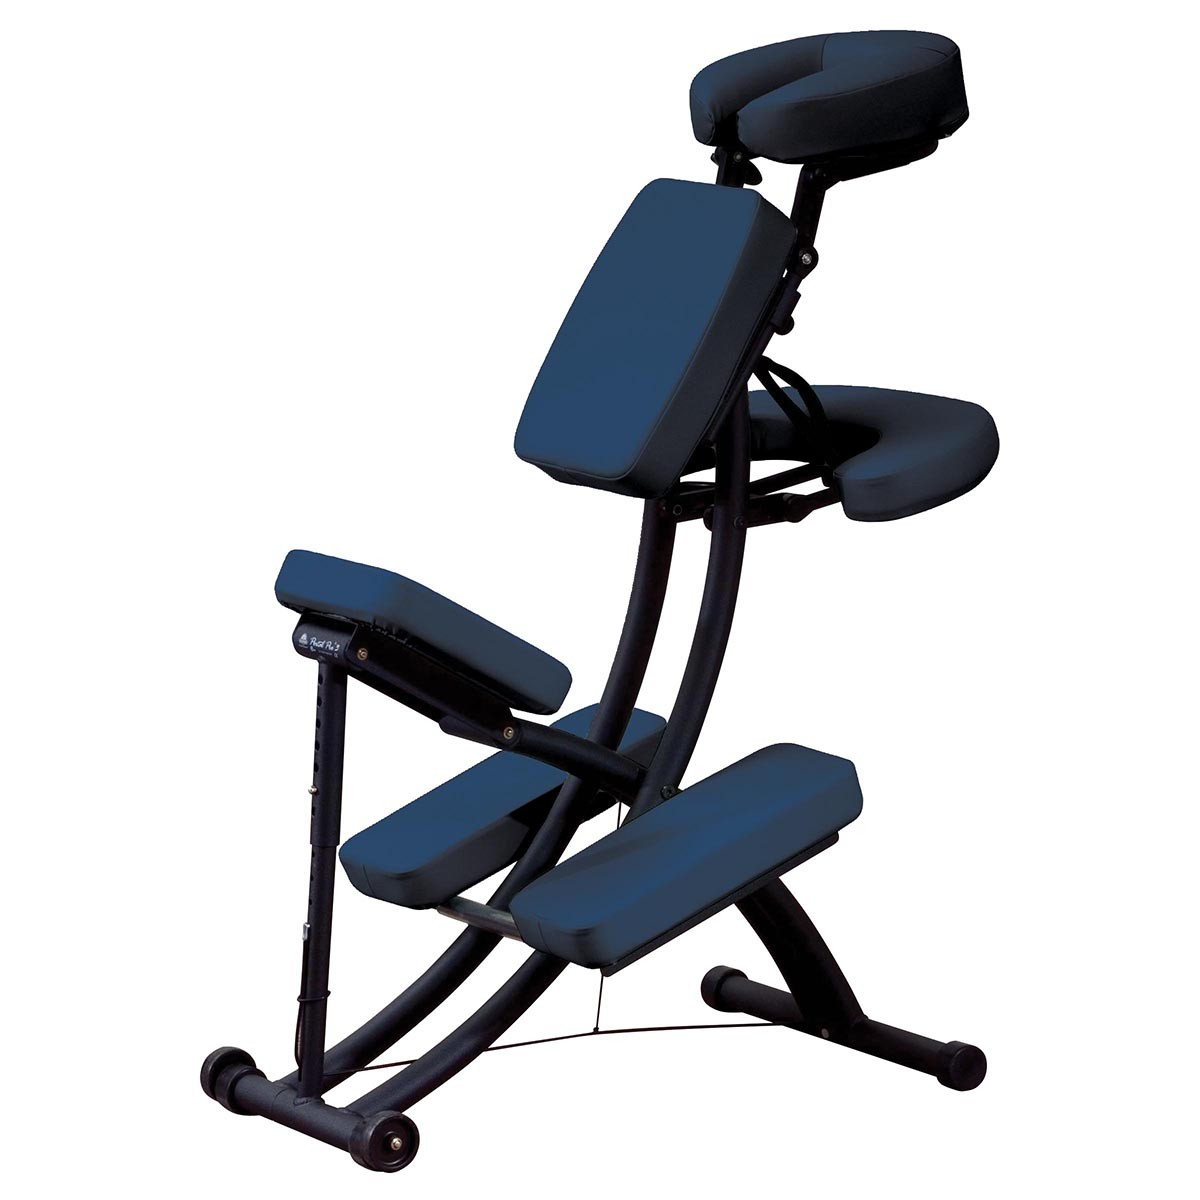 La chaise de massage oakworks portal pro - Chaise de massage pas cher ...